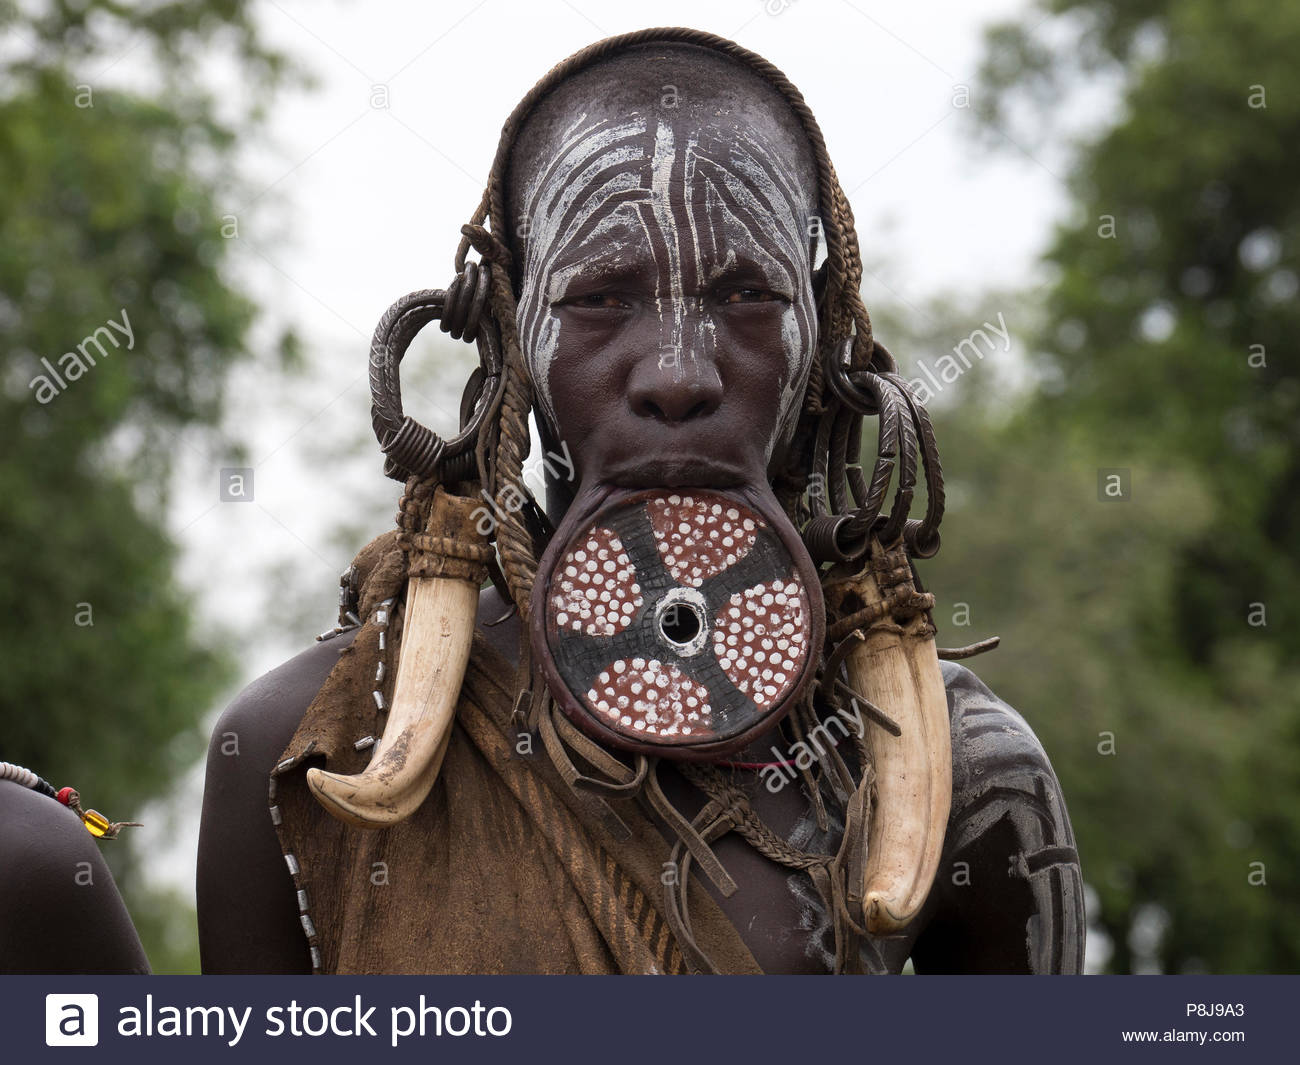 Woman with lip plate from the Mursi tribe, Ethiopia - Stock Image